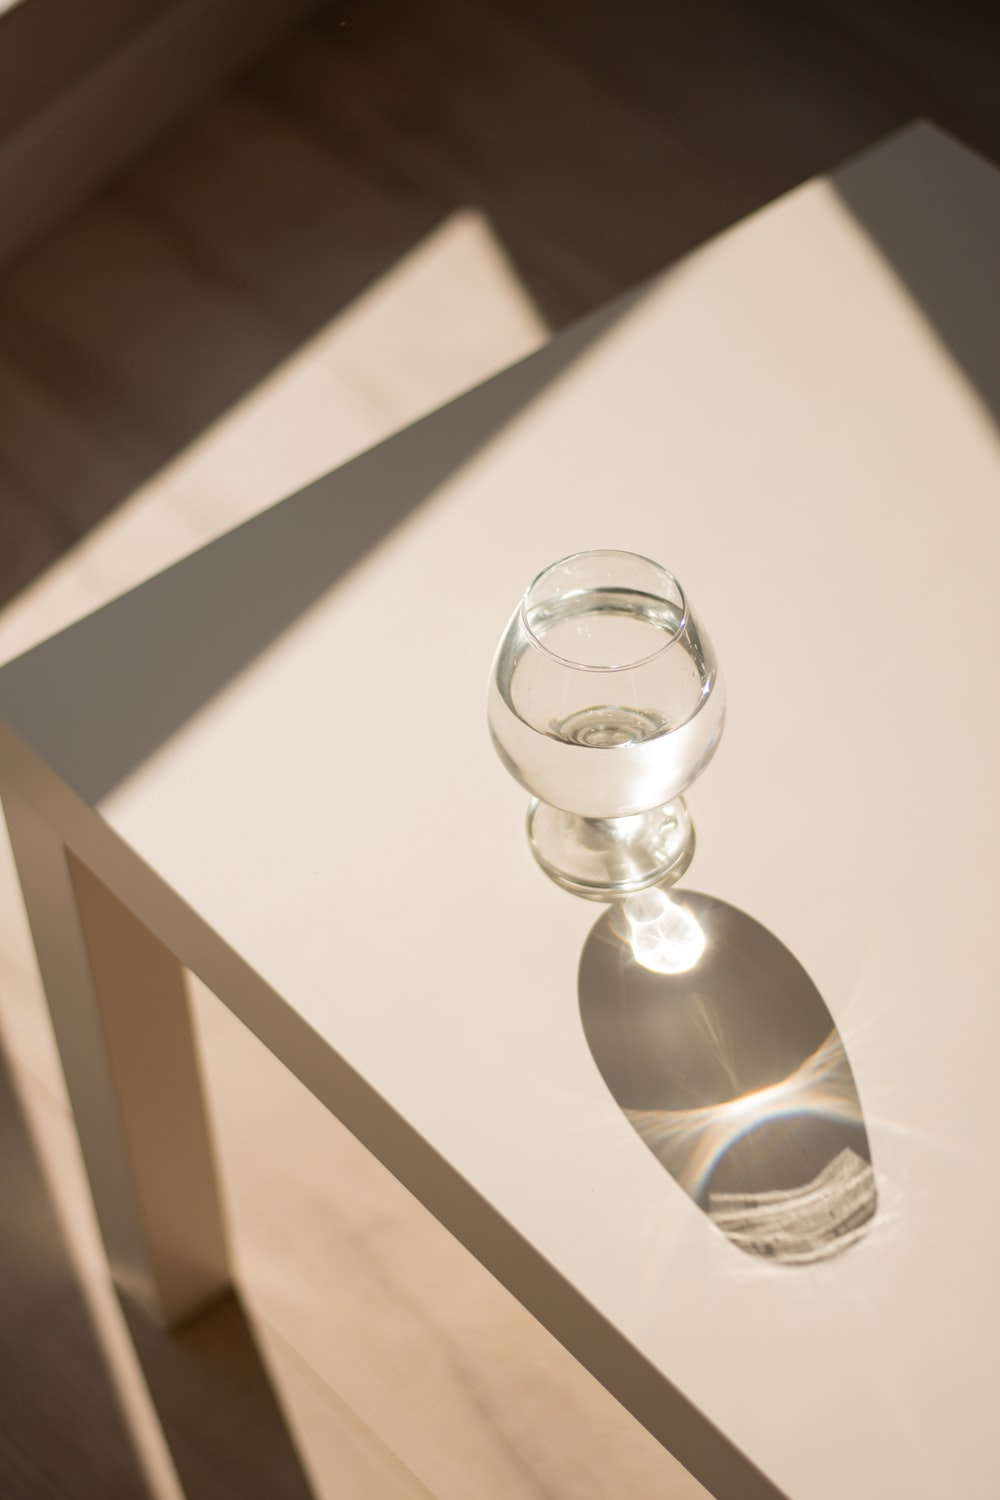 clear glass ball on white wooden table